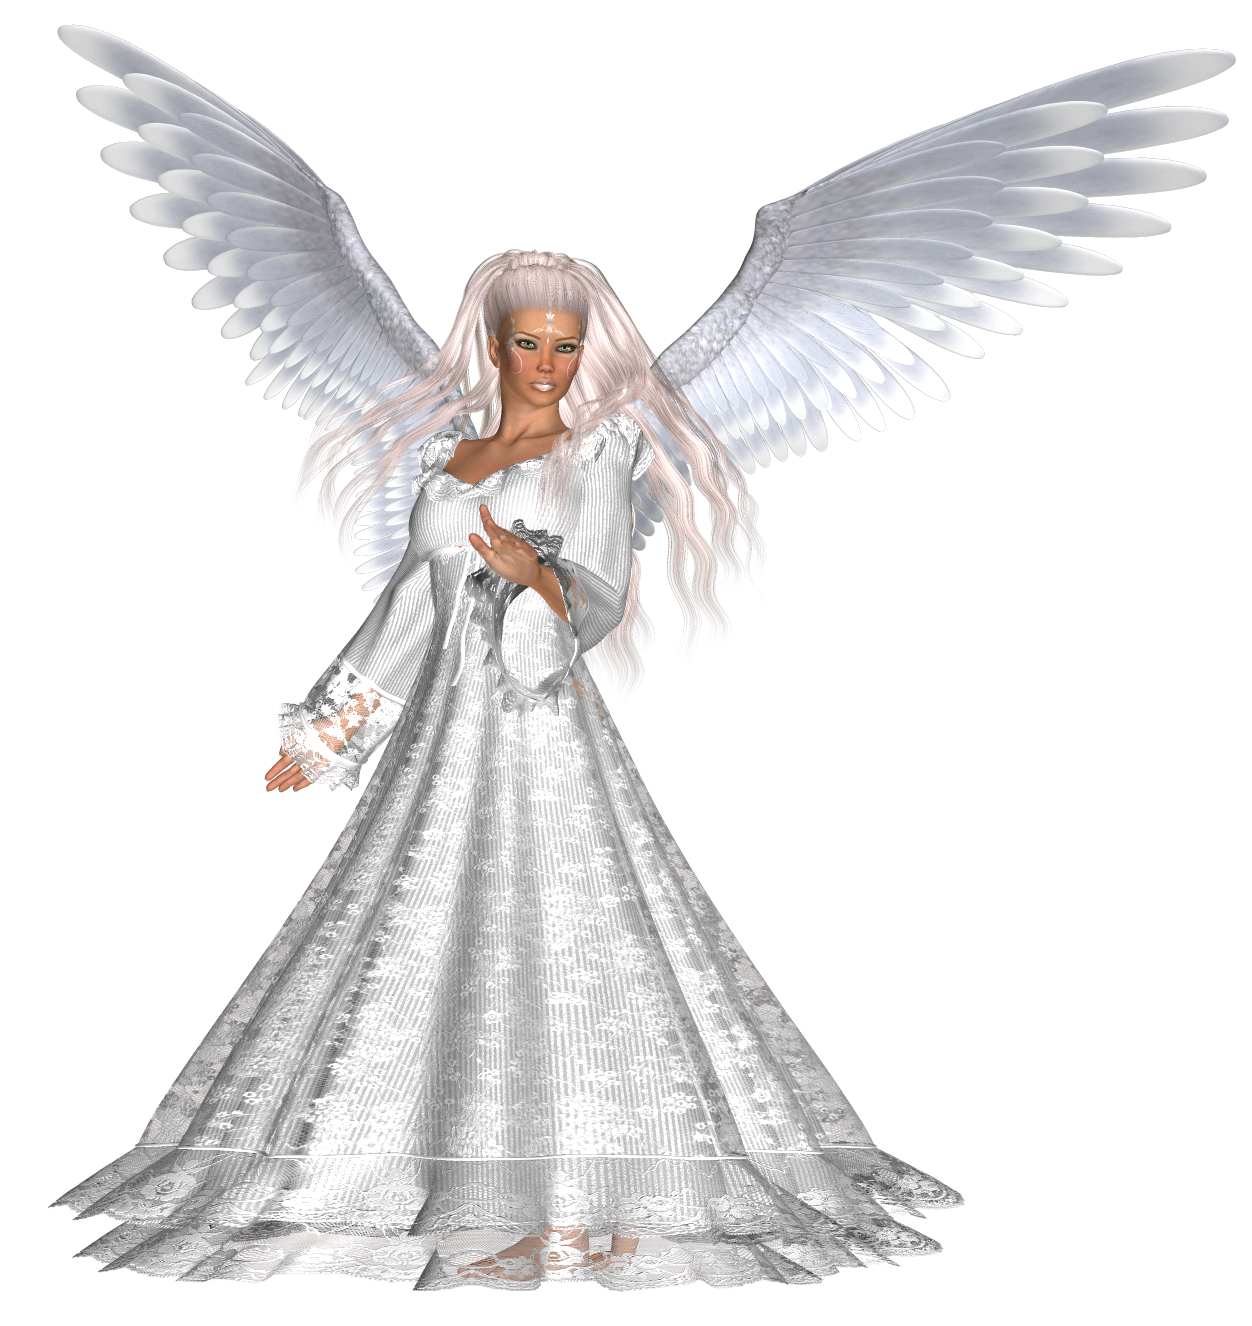 Angels png clipart for photoshop. Beautiful female angel gallery